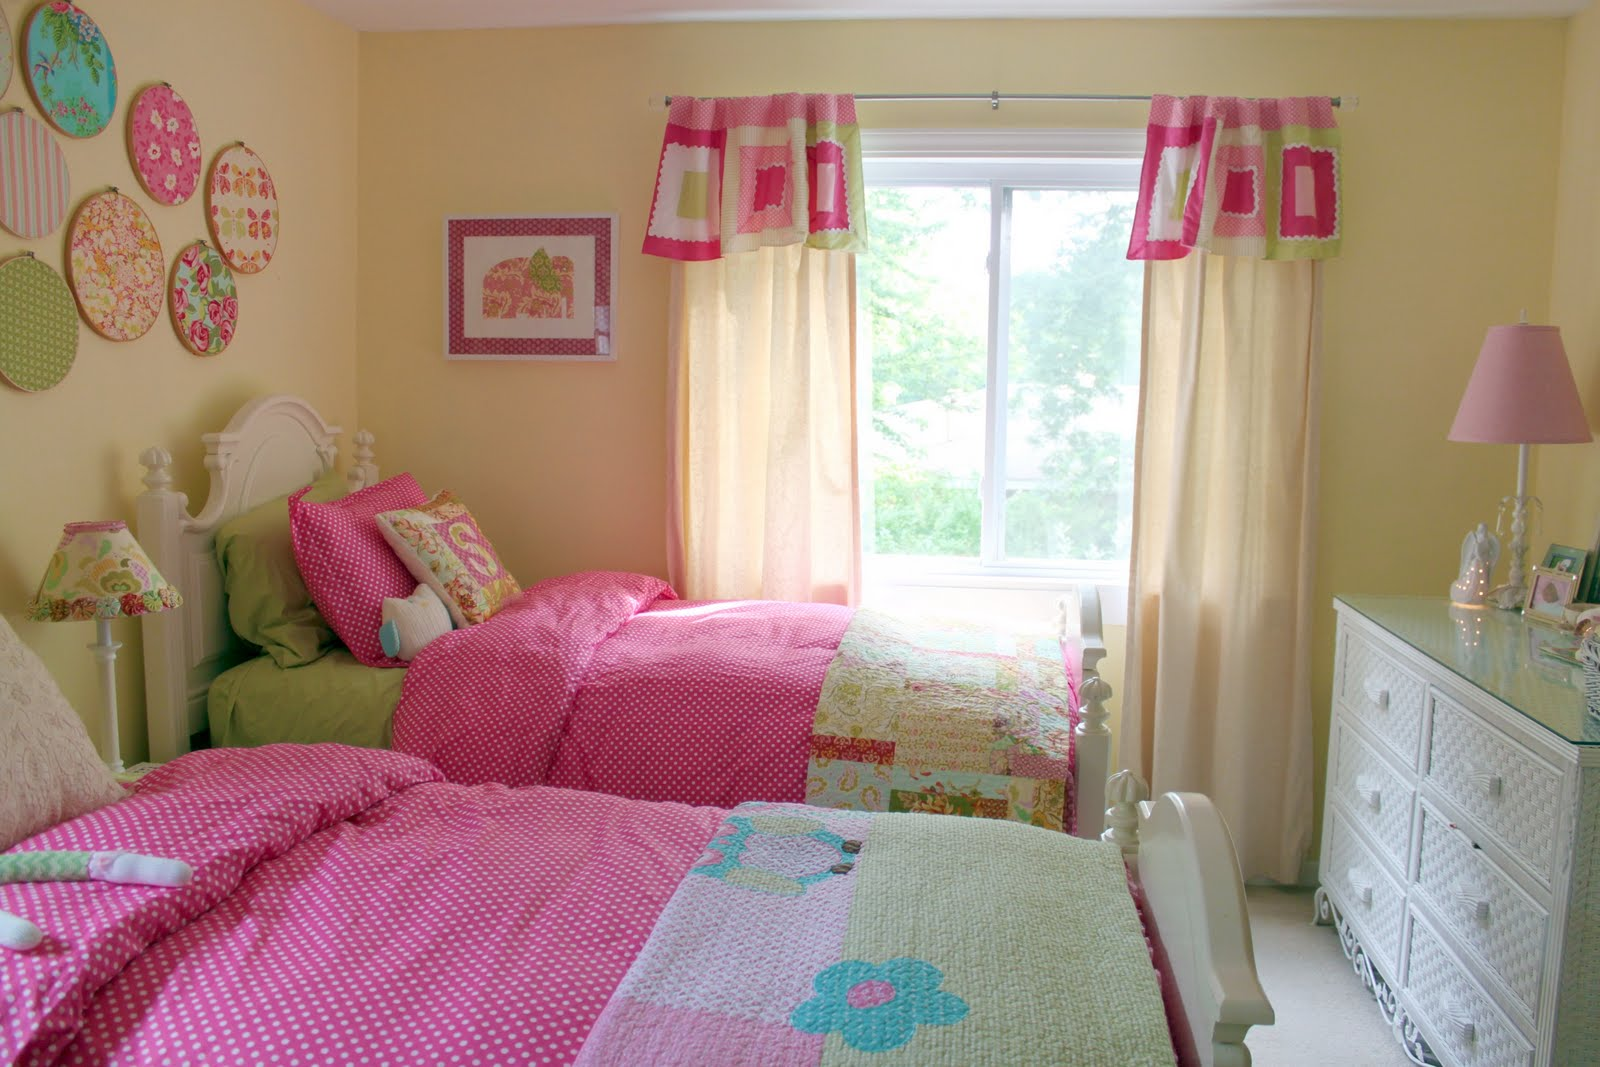 amelias room newyoungmum amelia s toddler bedroom